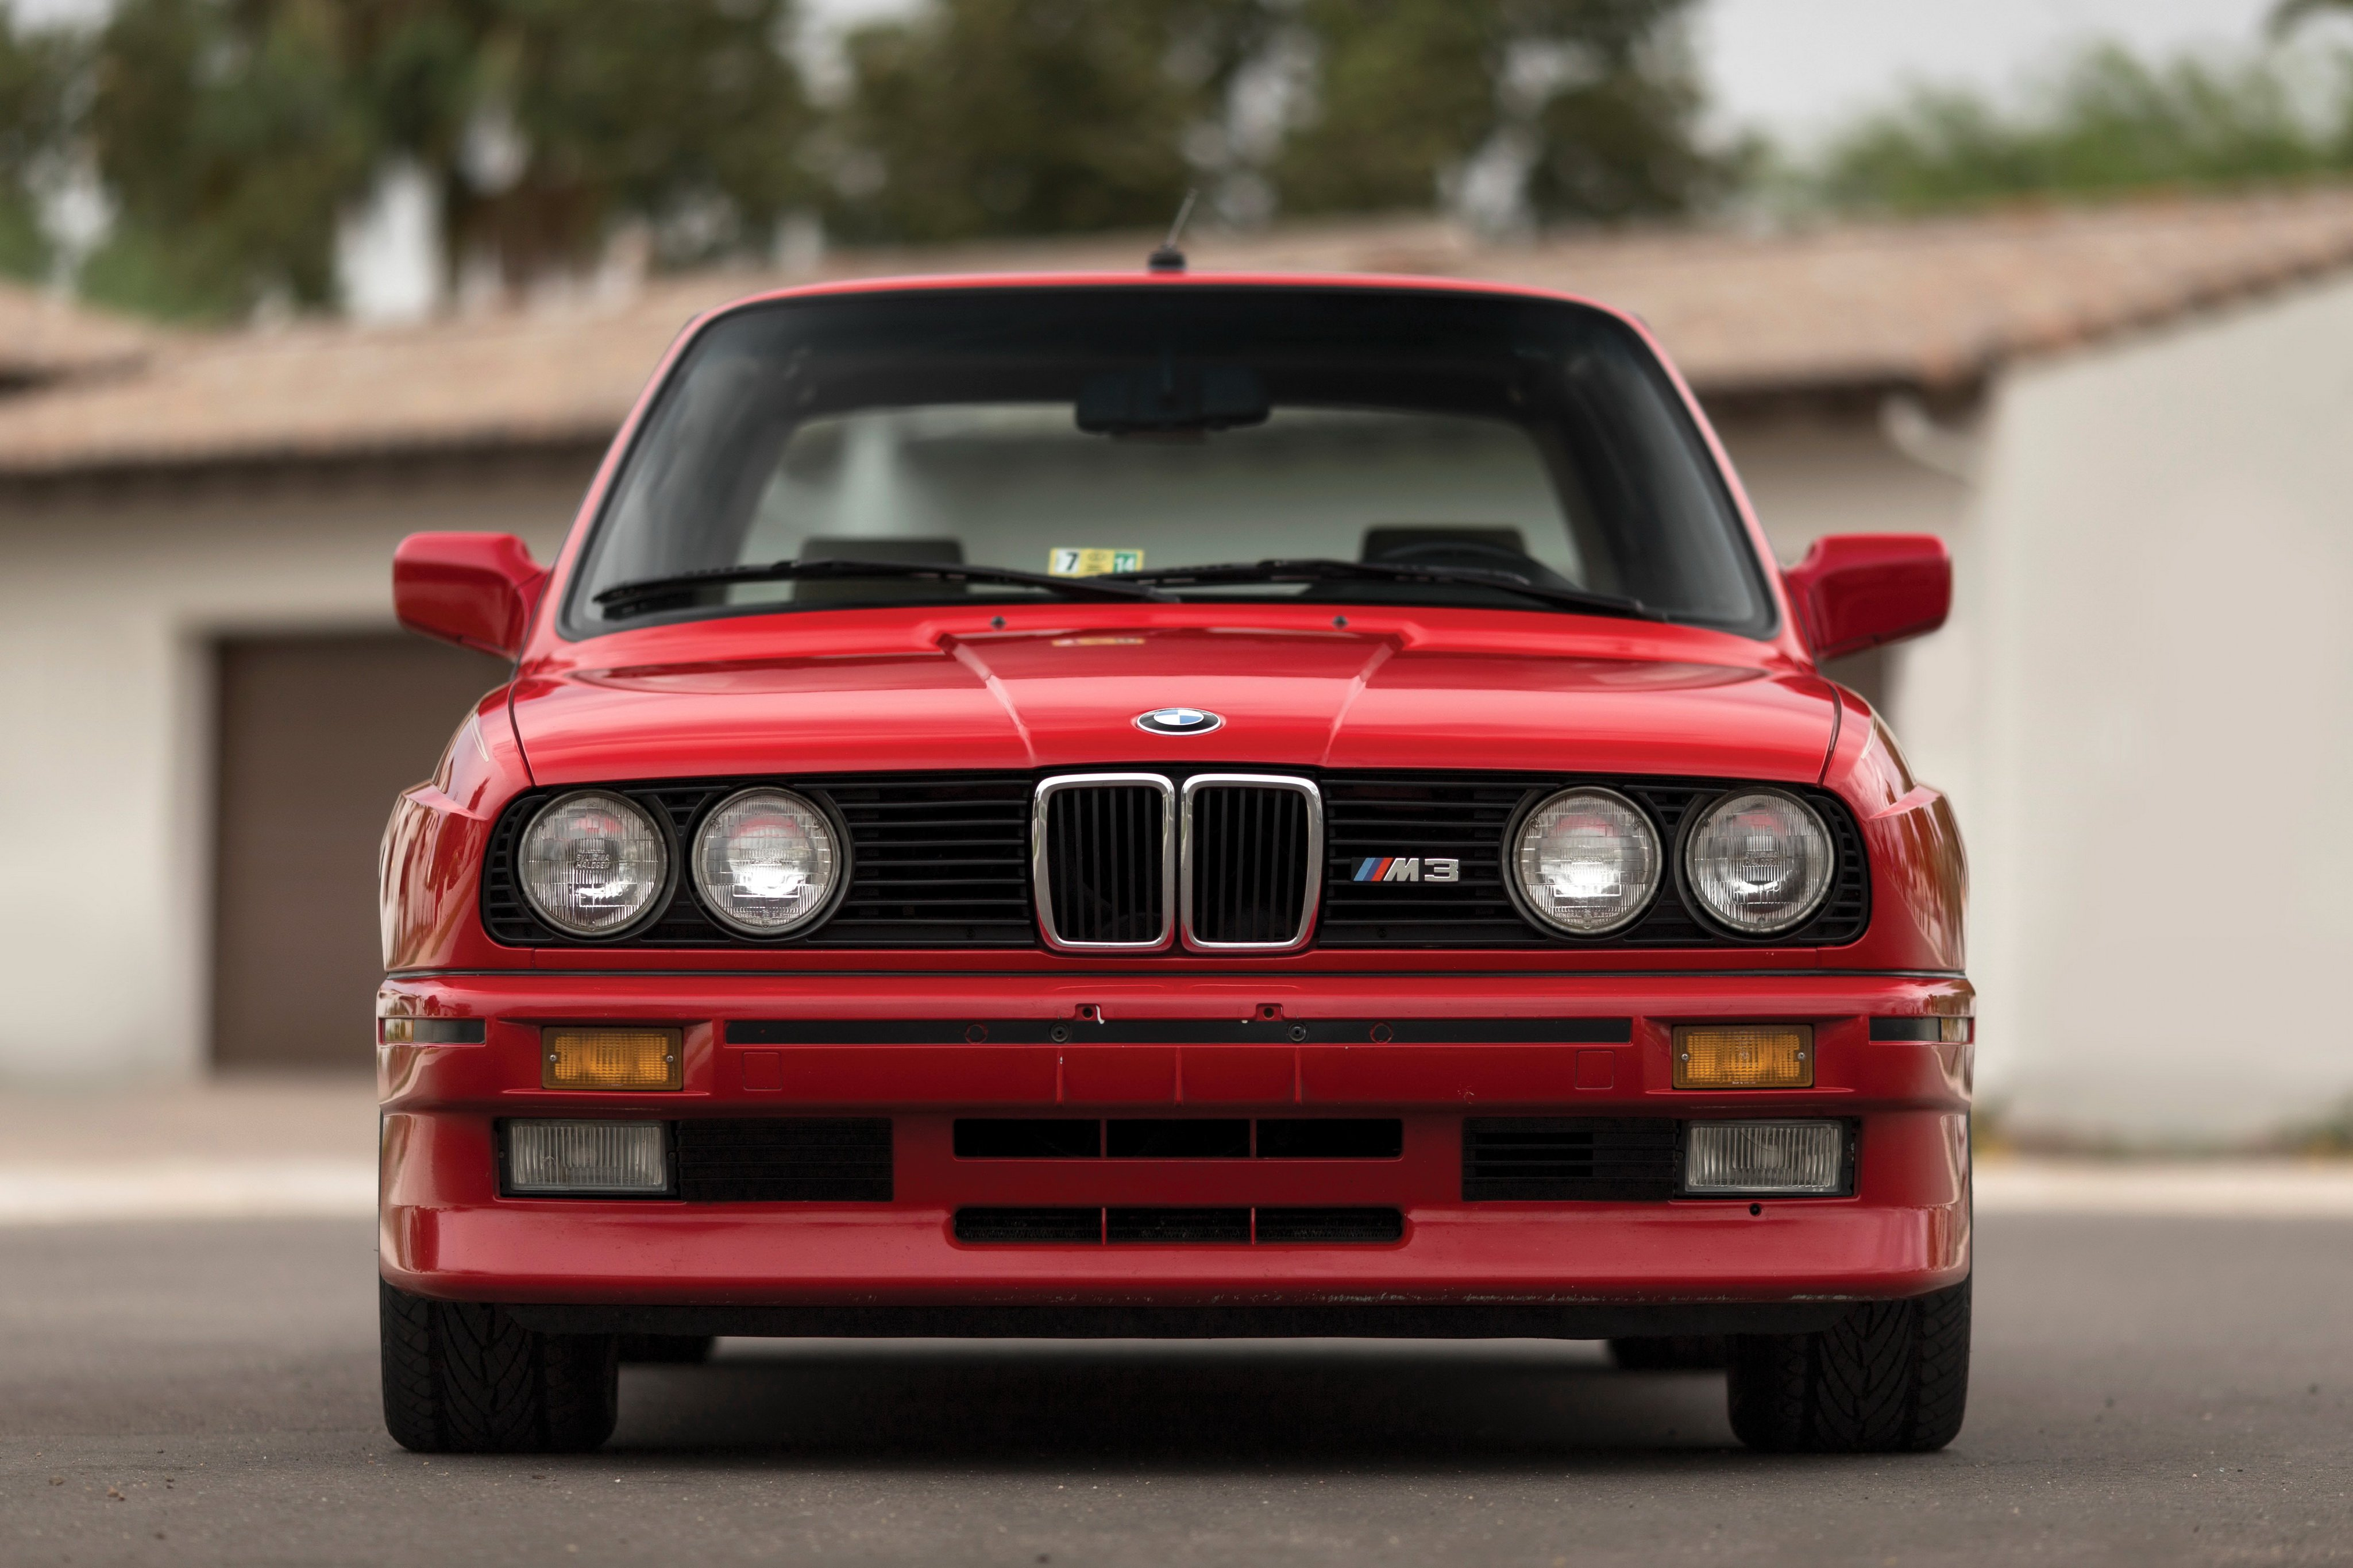 BMW M3 Coupe US-spec E30 cars coupe red 1987 wallpaper ...